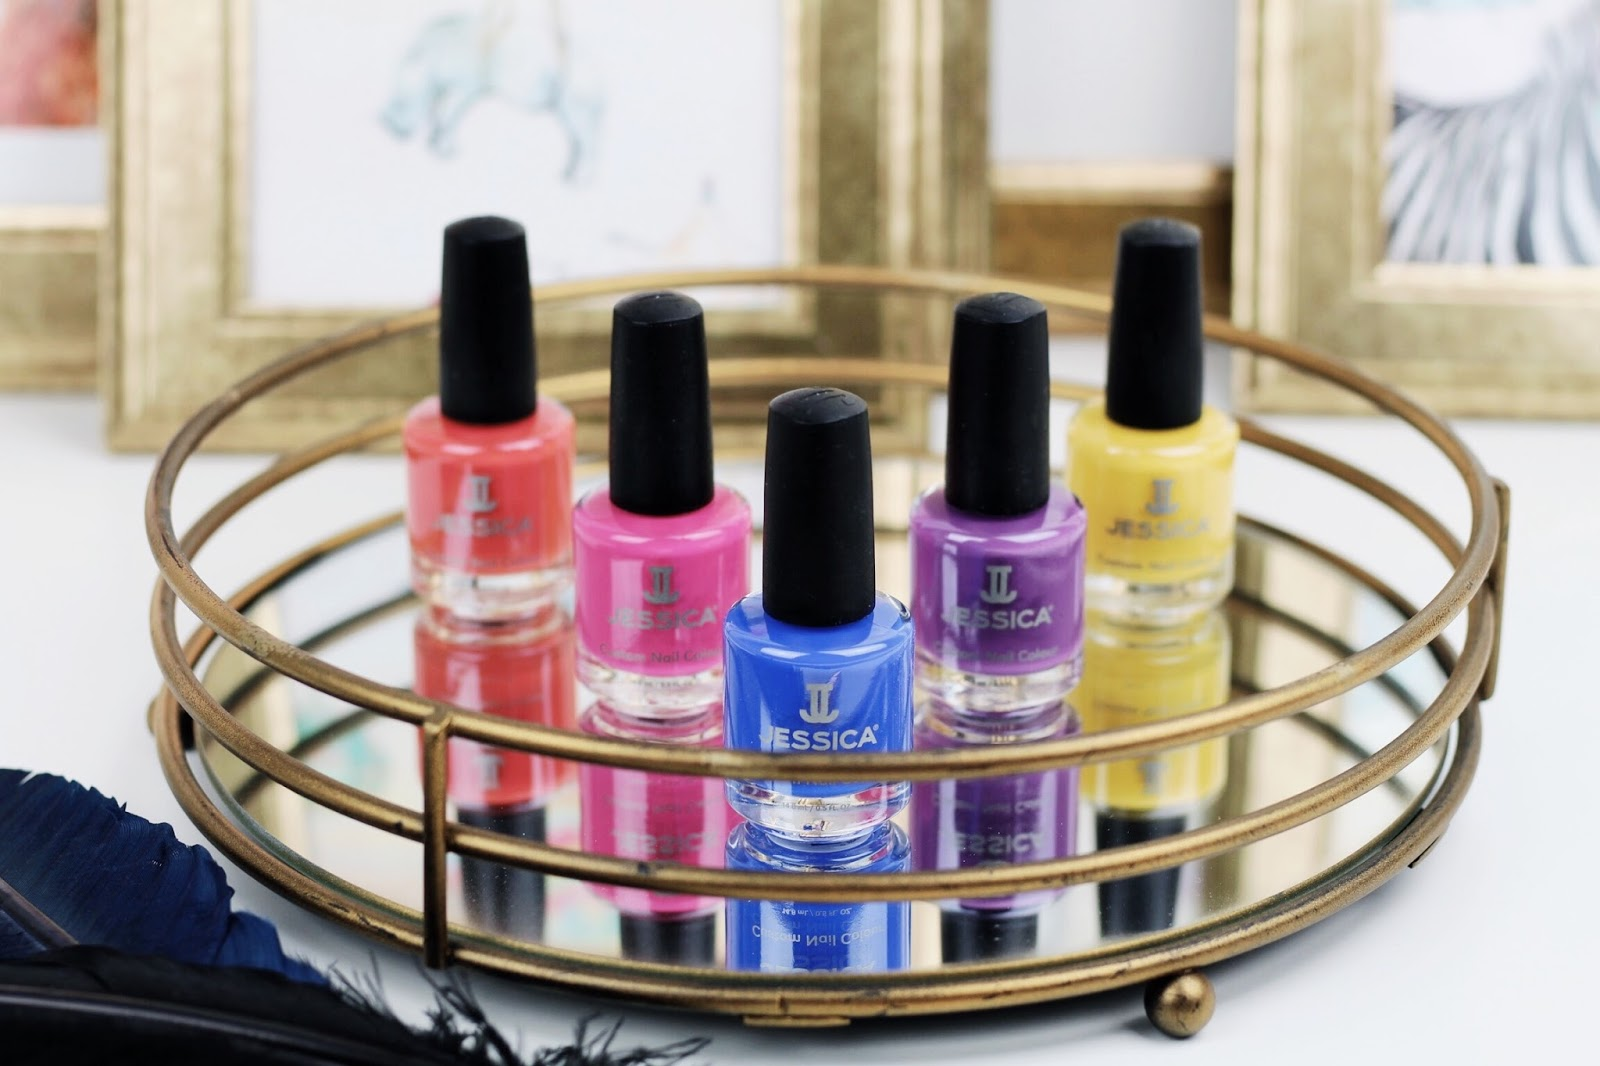 Jessica Nails Prime Collection Blog Review